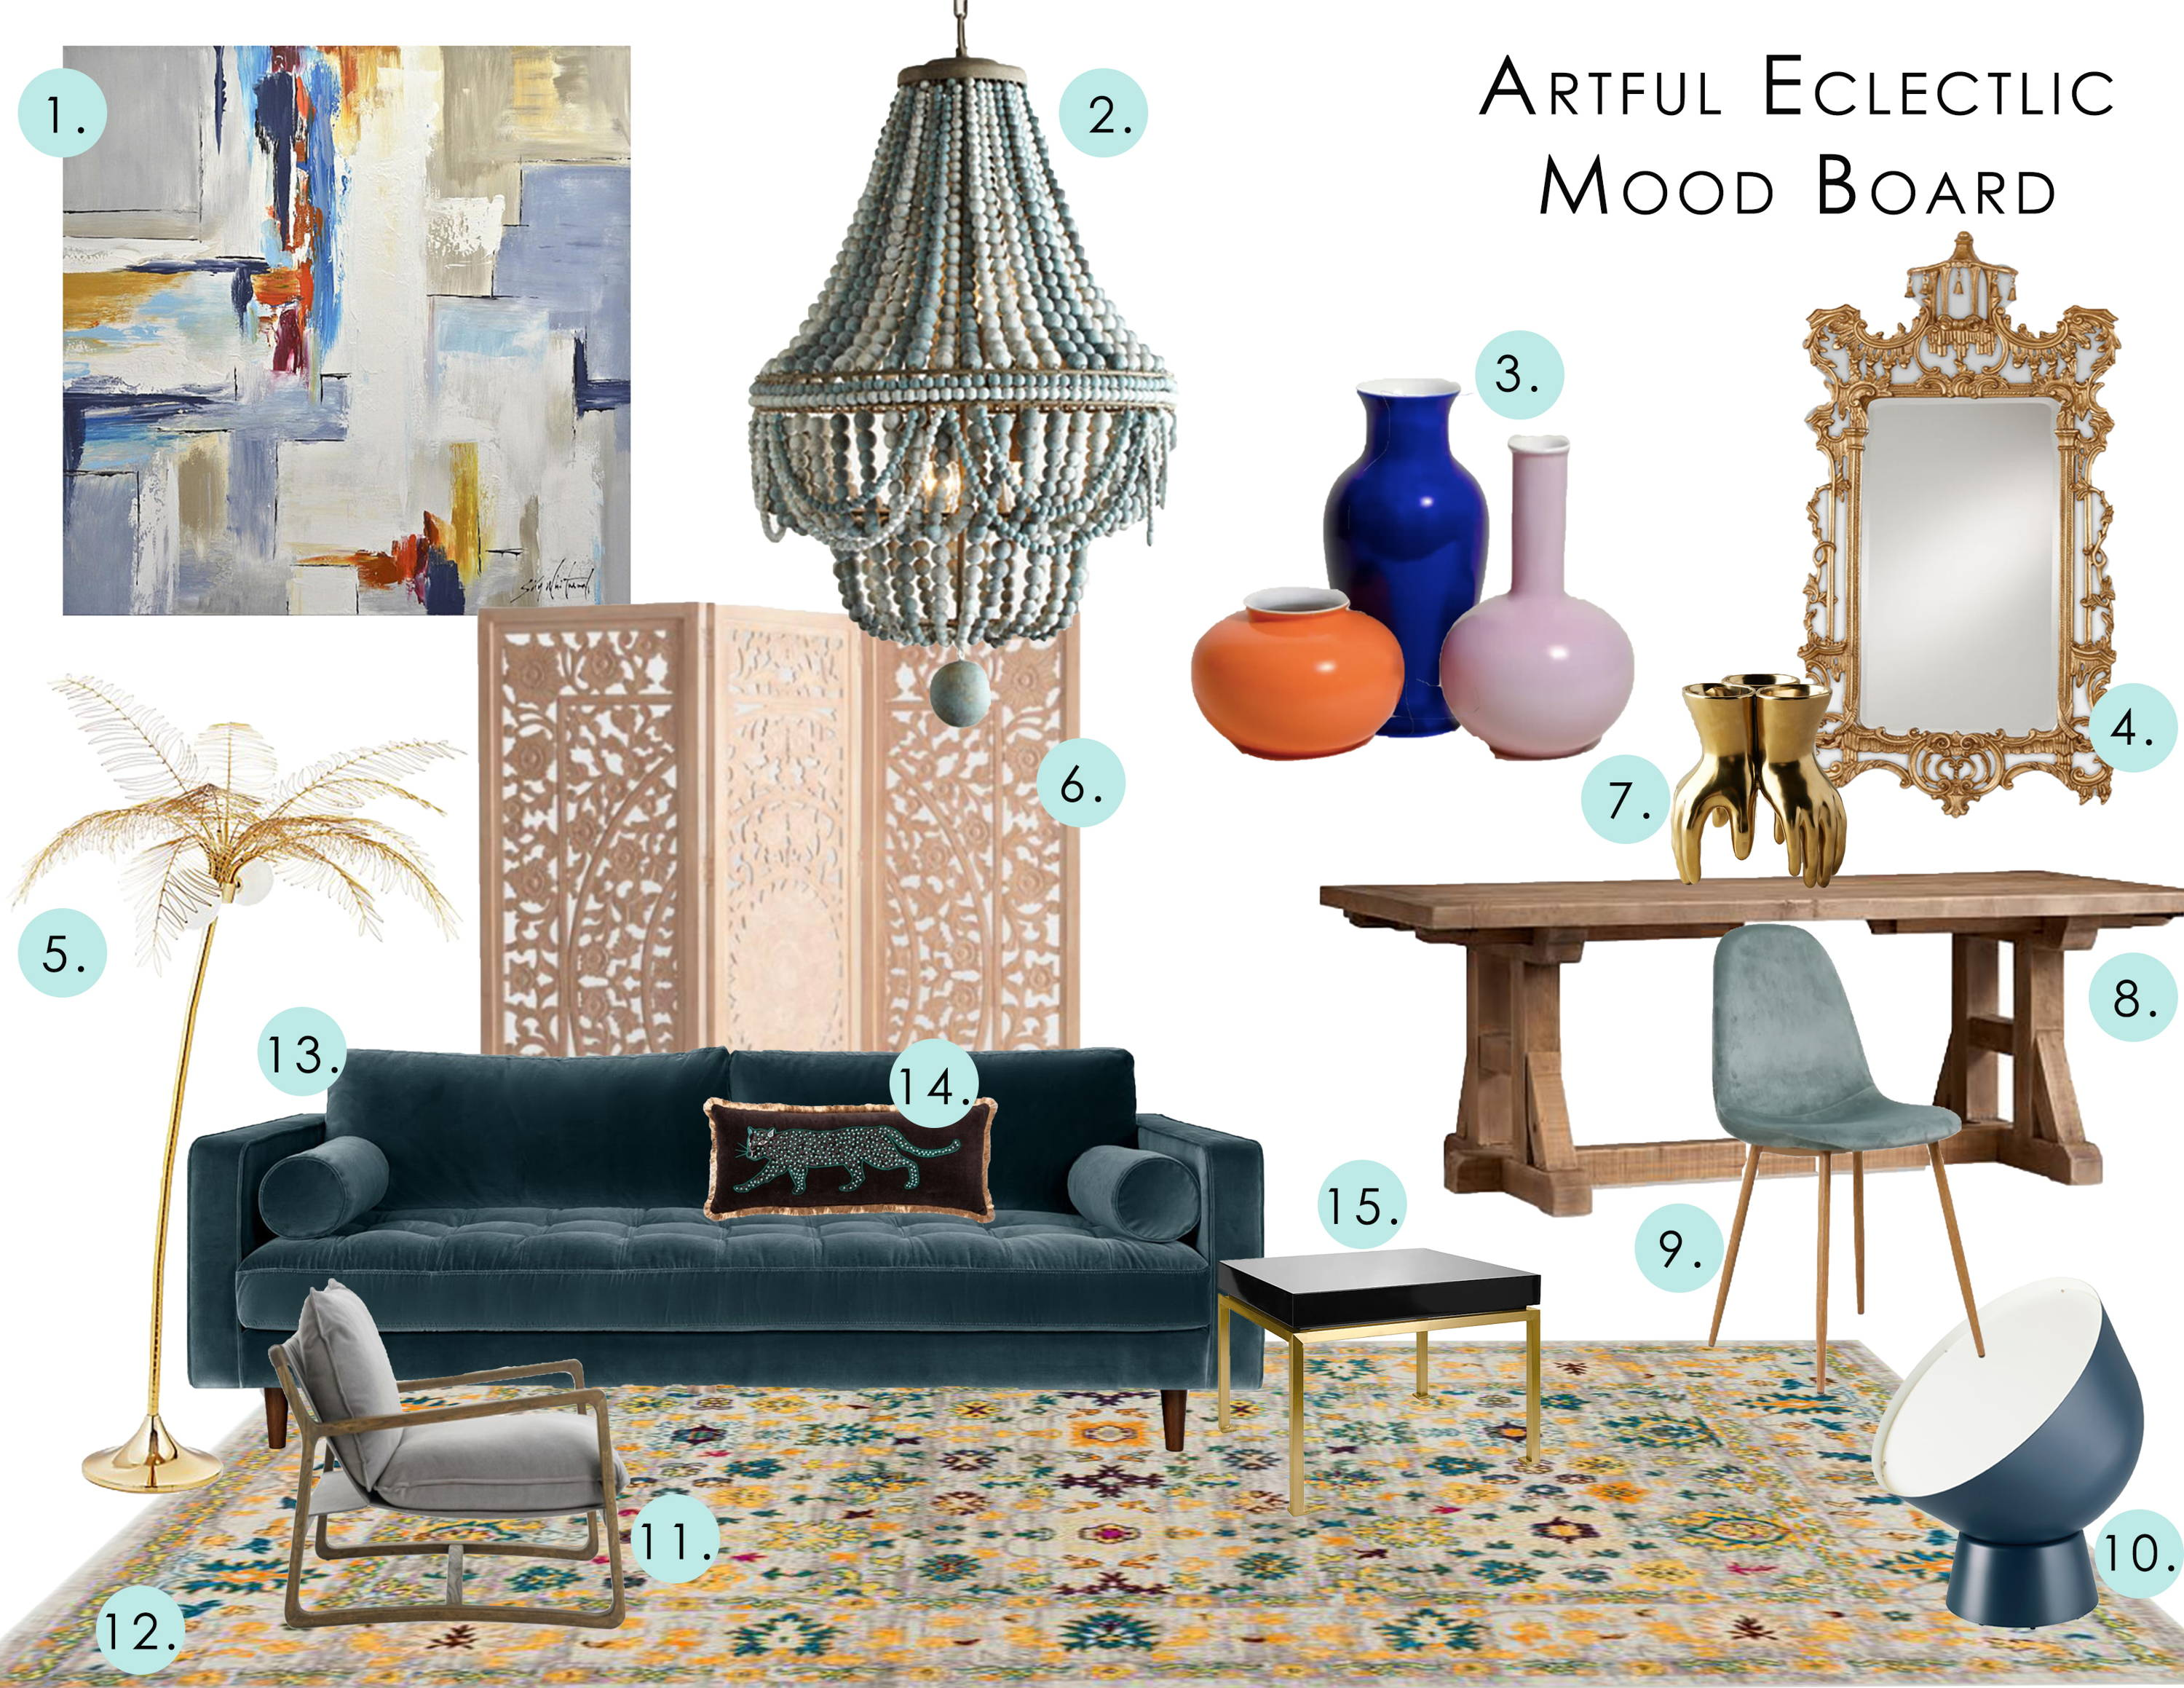 interior design mood board in the artful eclectic design style